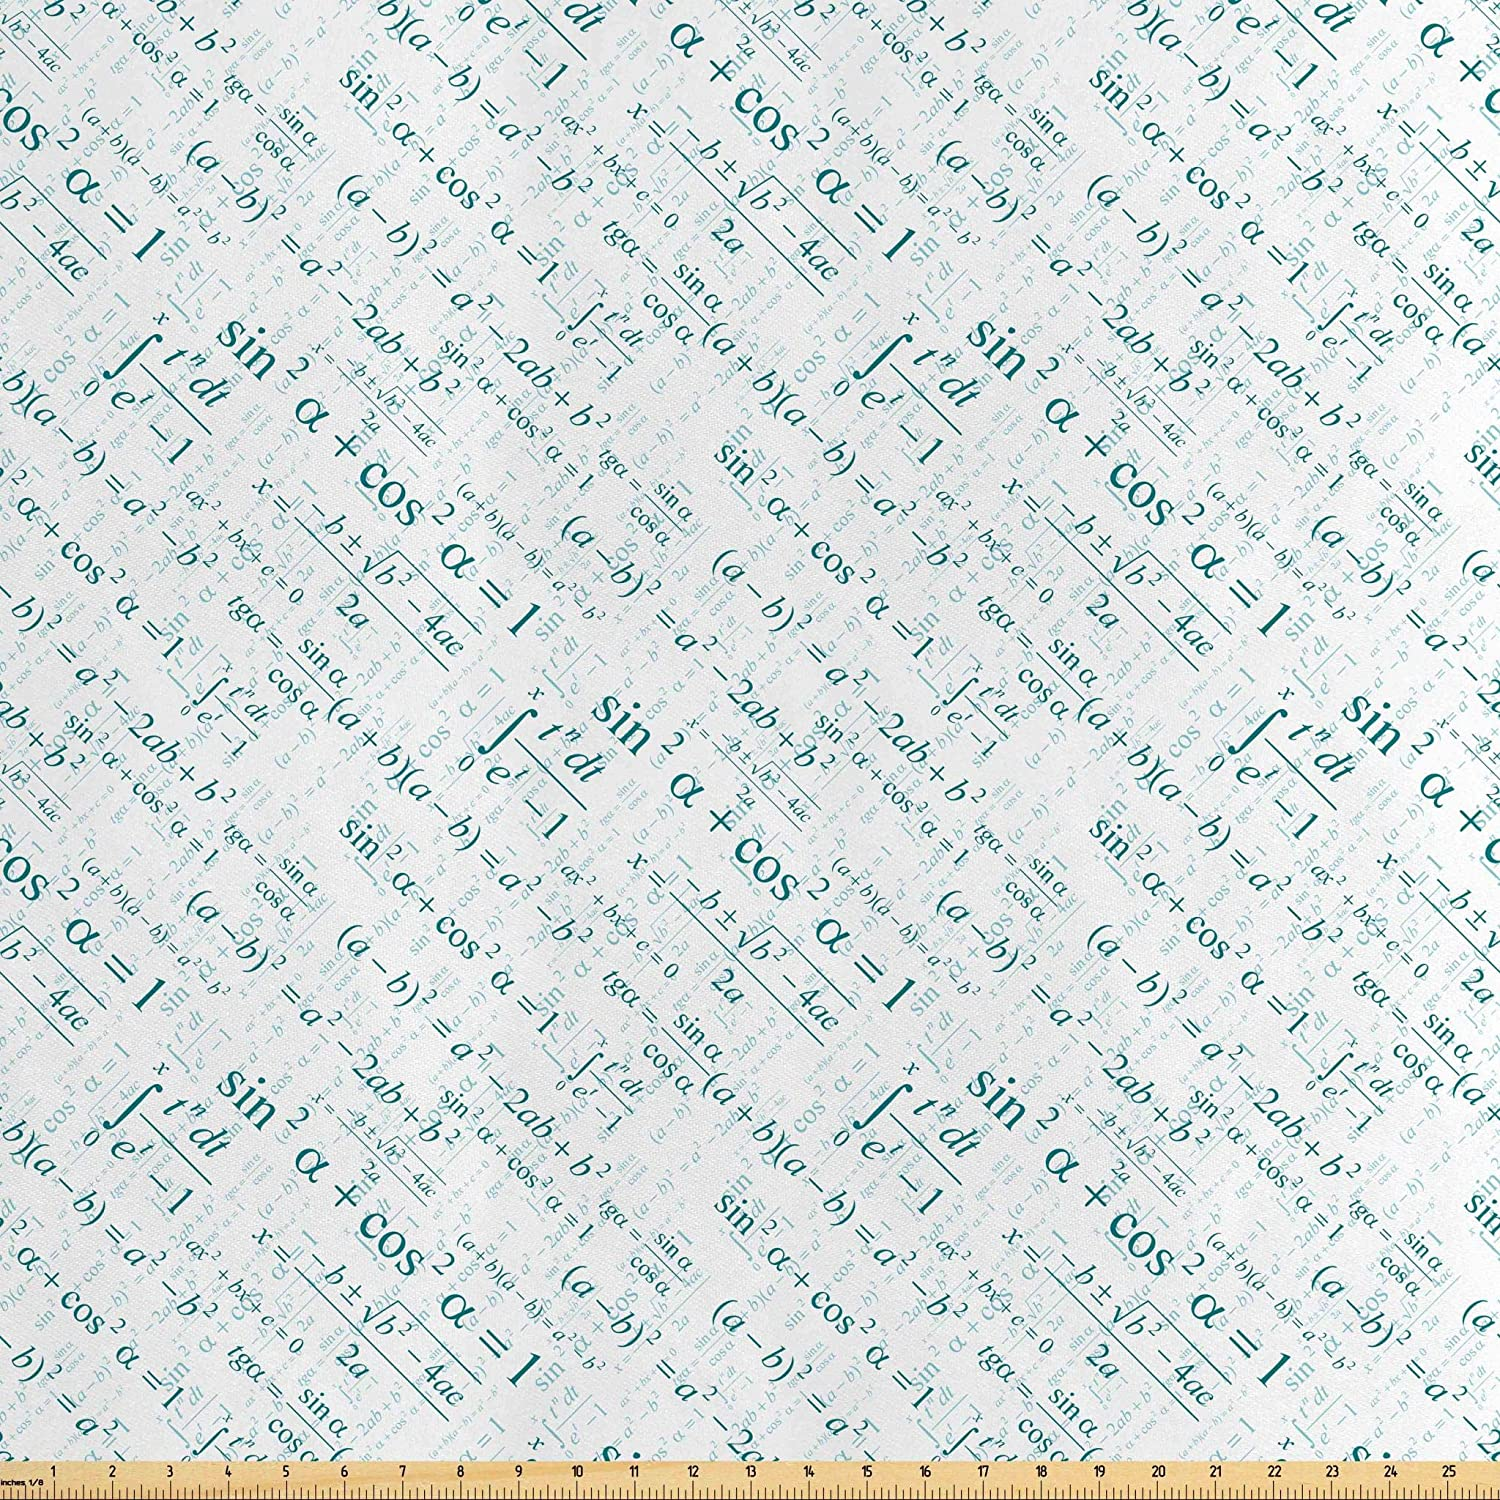 Lunarable Mathematics Classroom Fabric by The Yard, Various Complex Math Formulas Operations Science Education Research, Decorative Satin Fabric for Home Textiles and Crafts, 5 Yards, Teal White